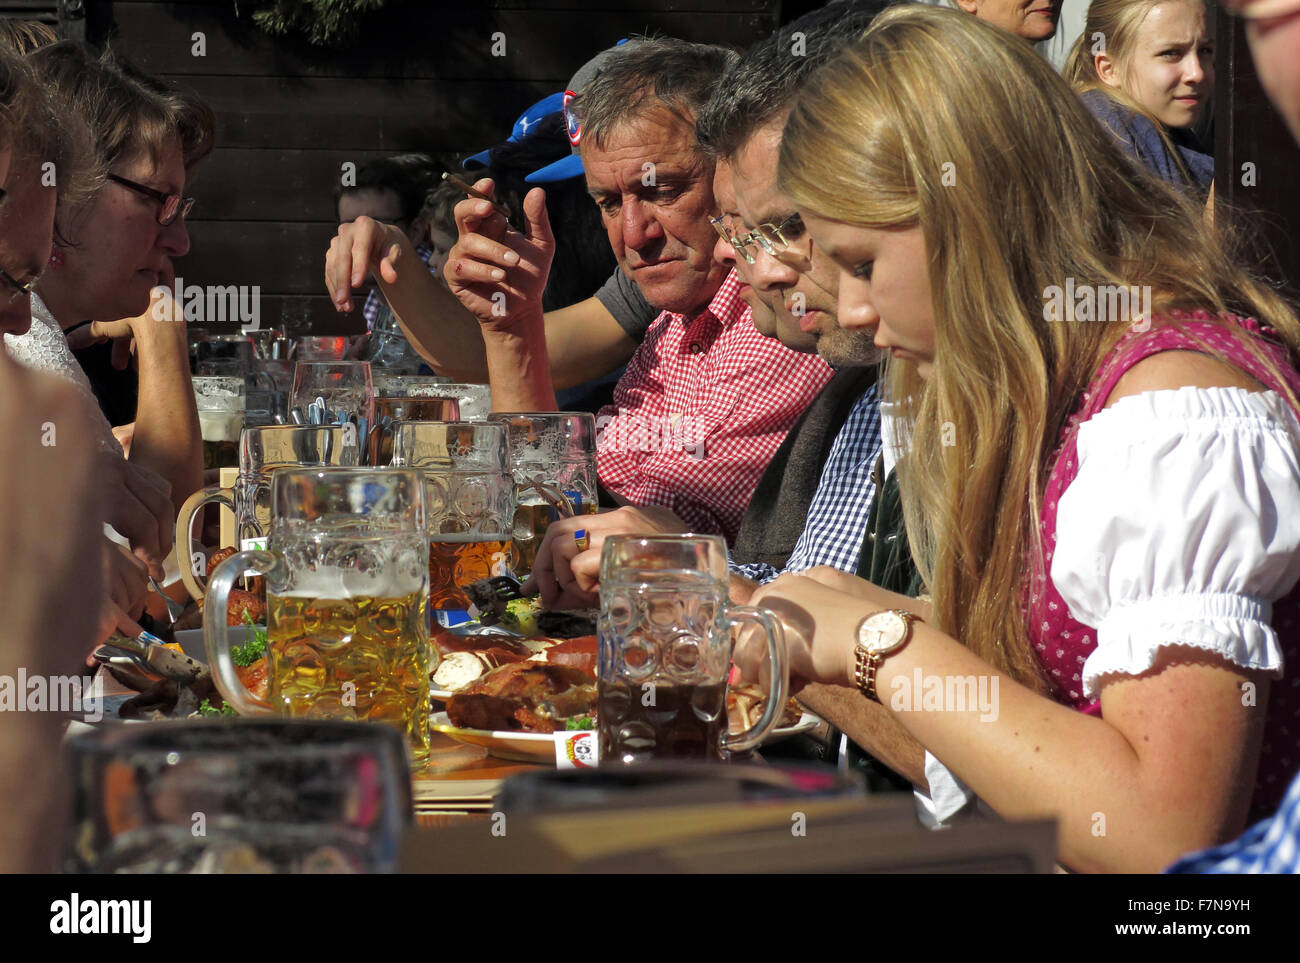 Garden Scenes at Munich Oktoberfest Beer Festival Stock Photo